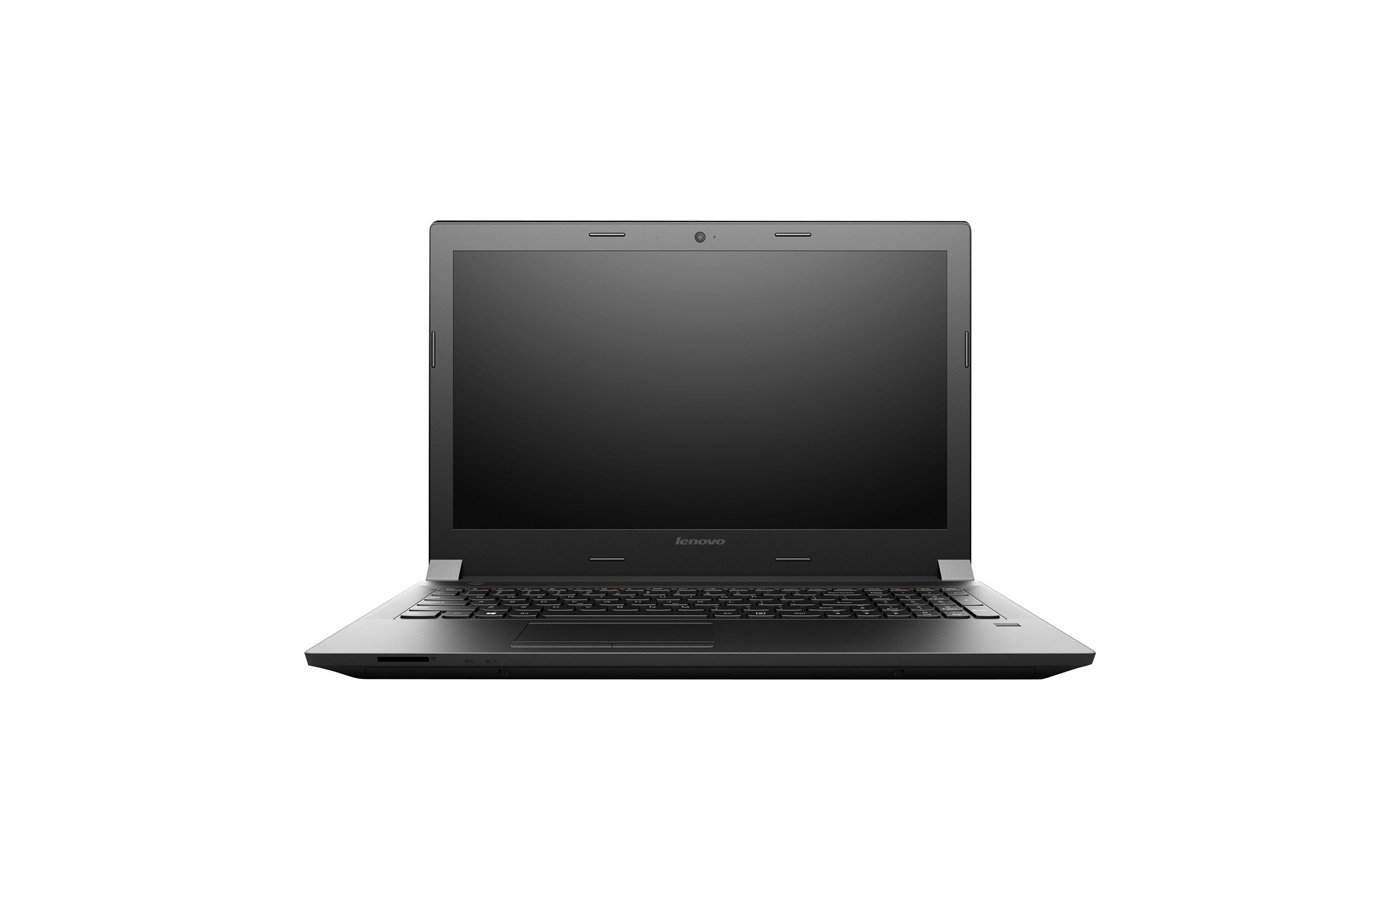 Ноутбук Lenovo IdeaPad B5045 /59446293/ AMD A6 6310/6Gb/500Gb/R3/15.6/Win10